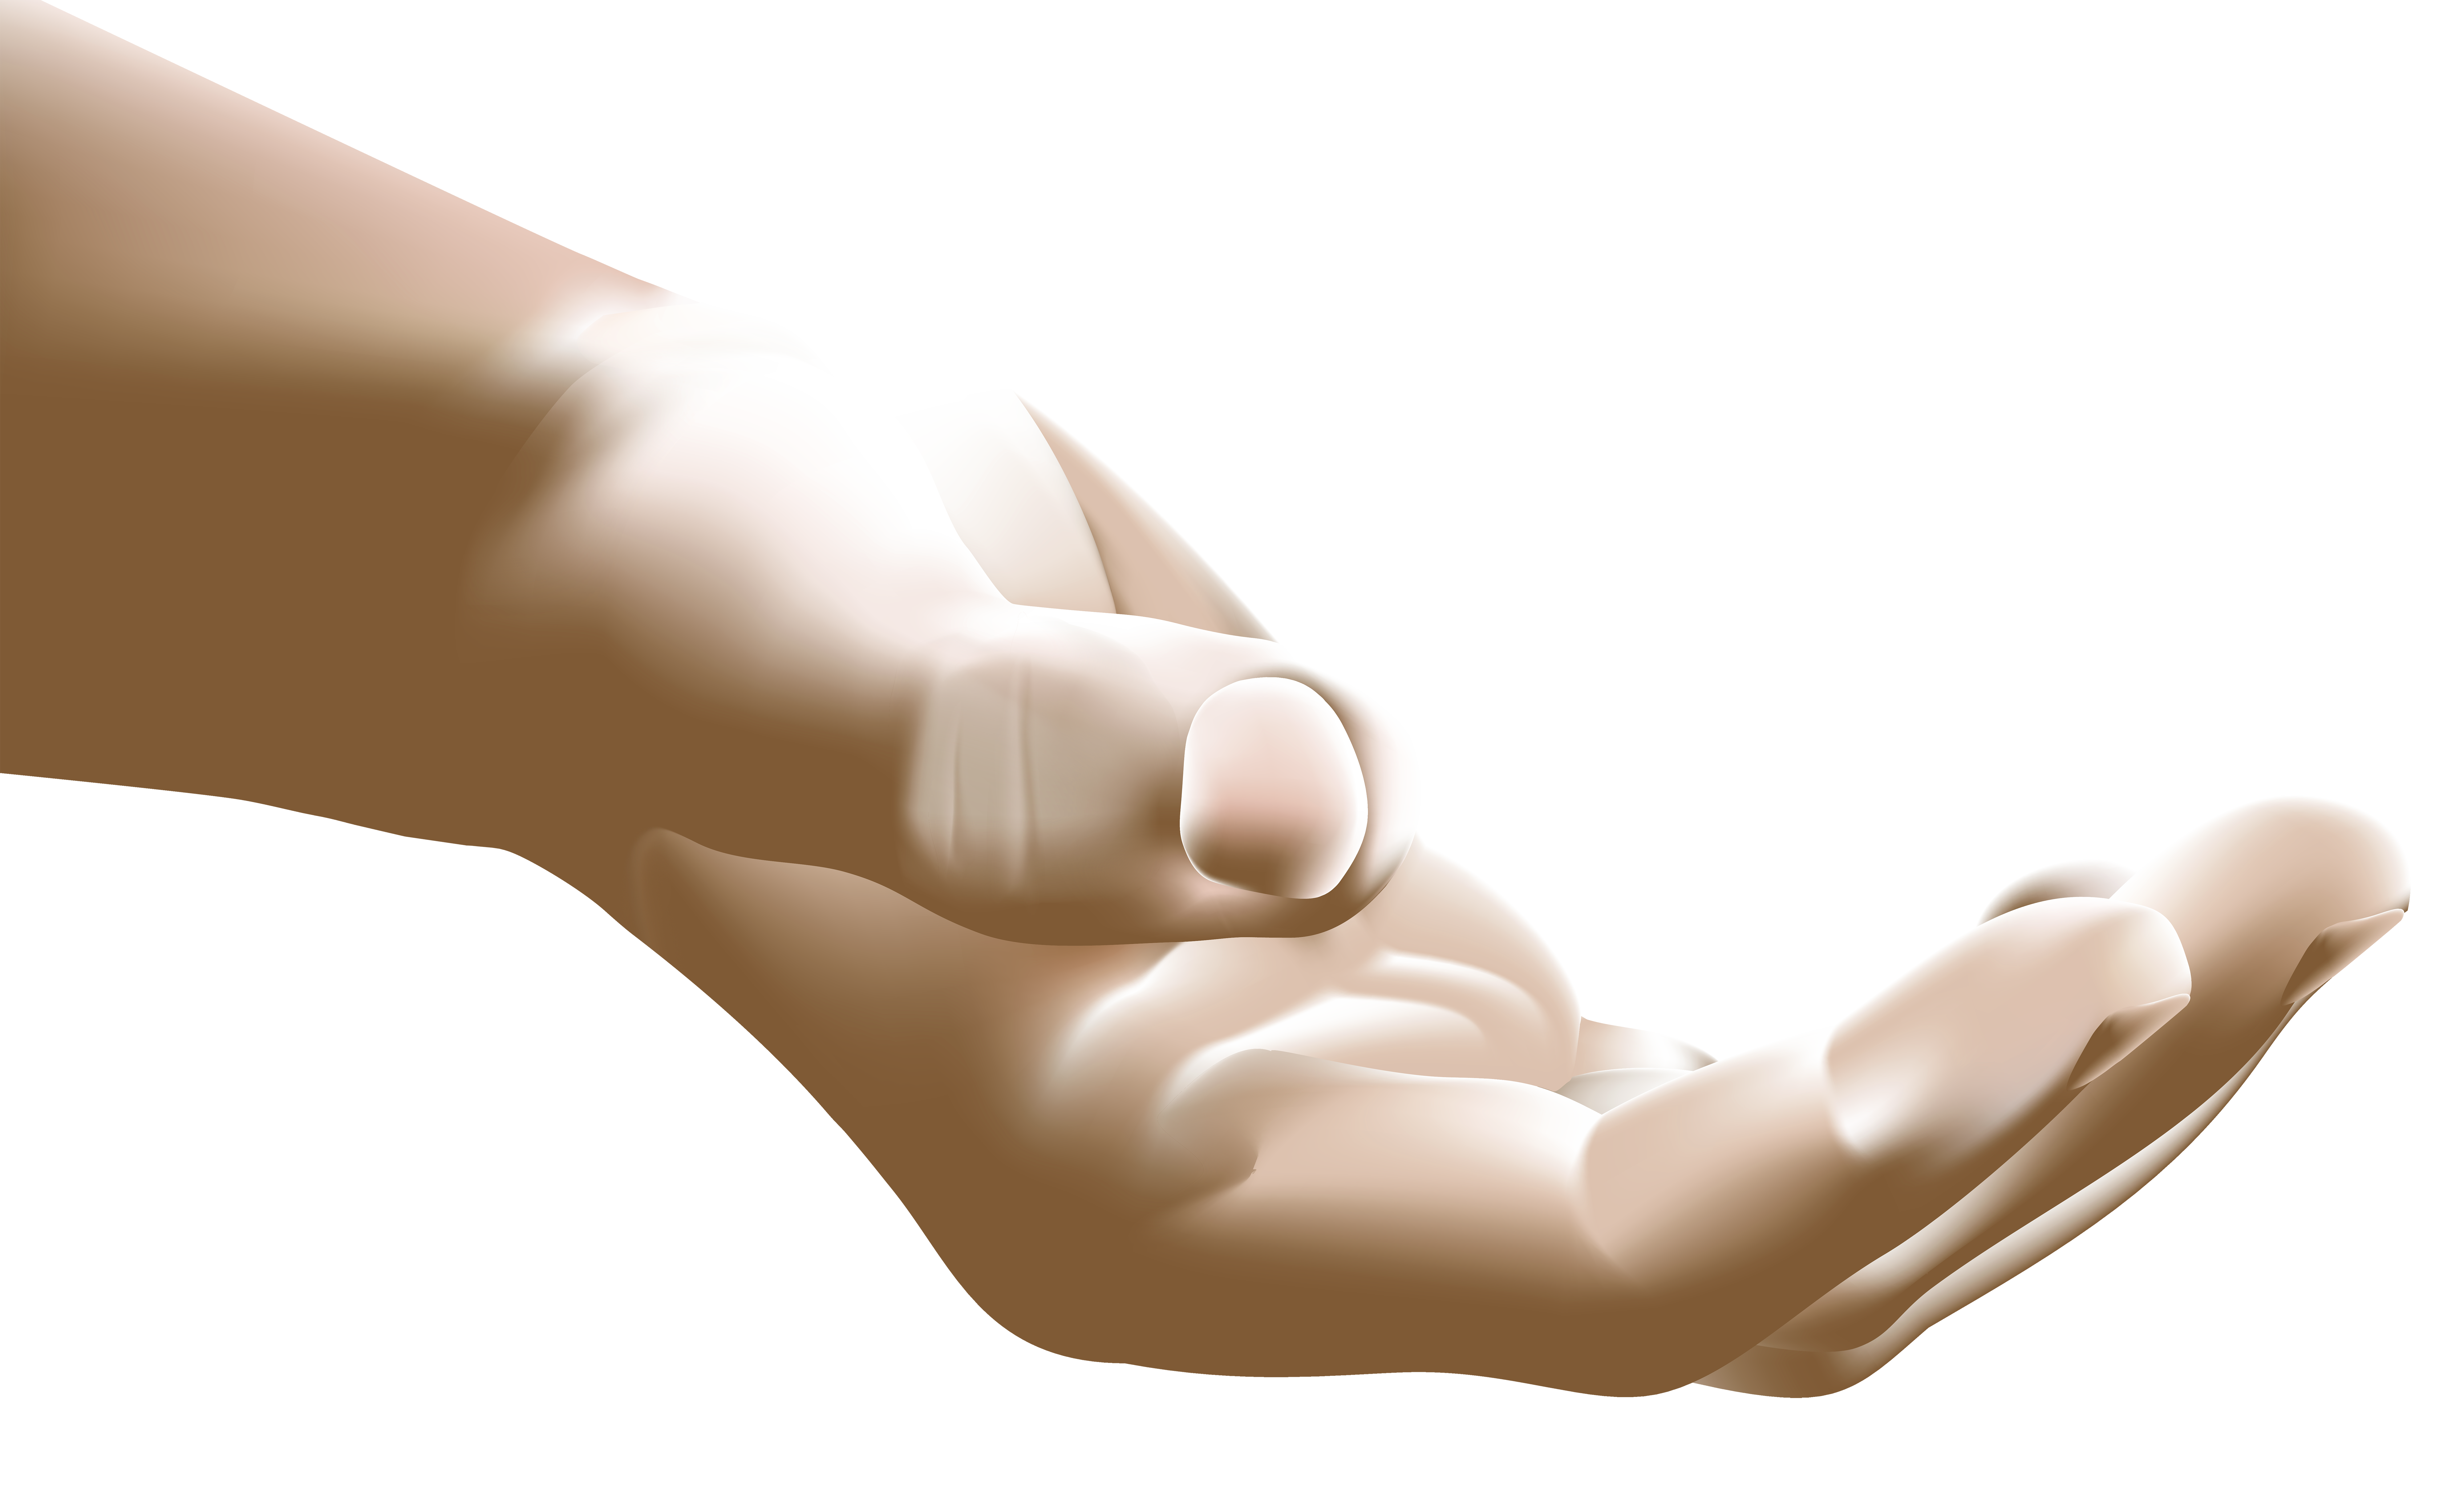 Giving hands png. Wanting and hand transparent